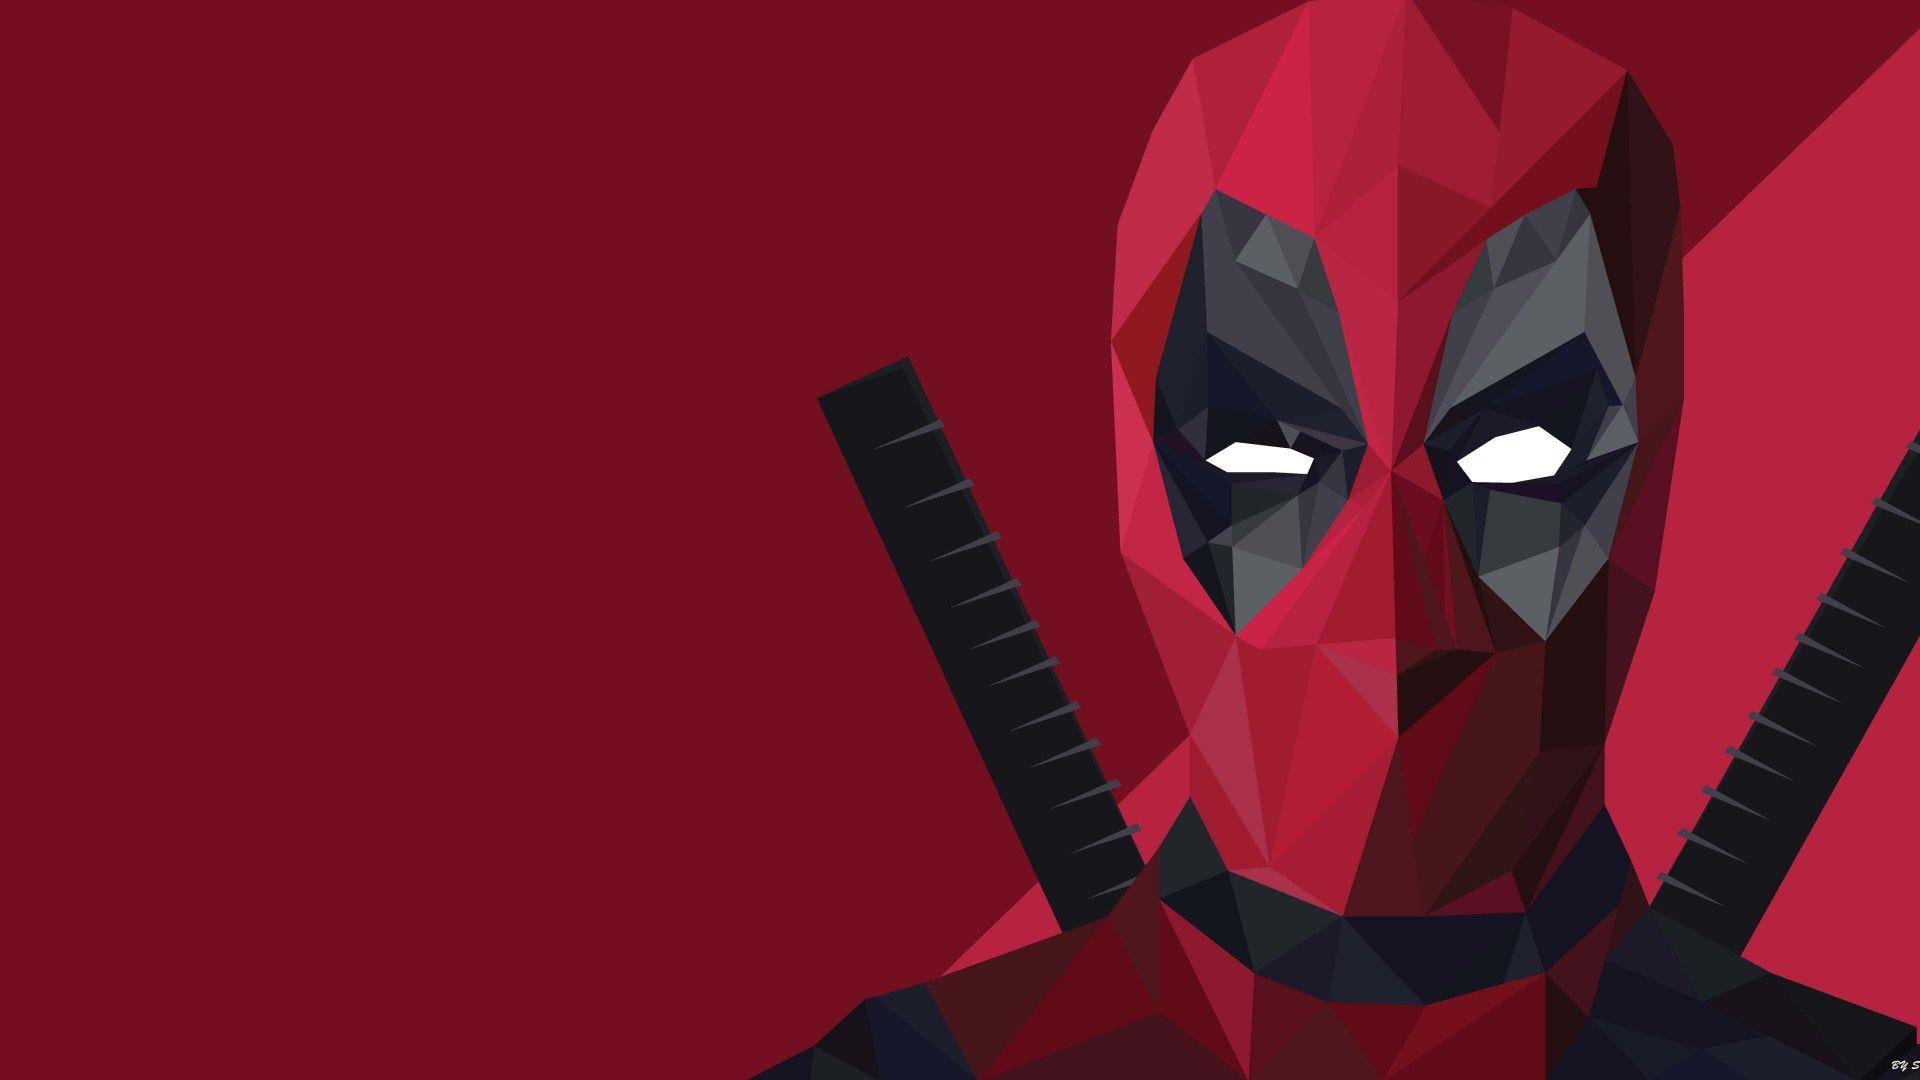 Deadpool Wallpapers 1080p - Wallpaper Cave